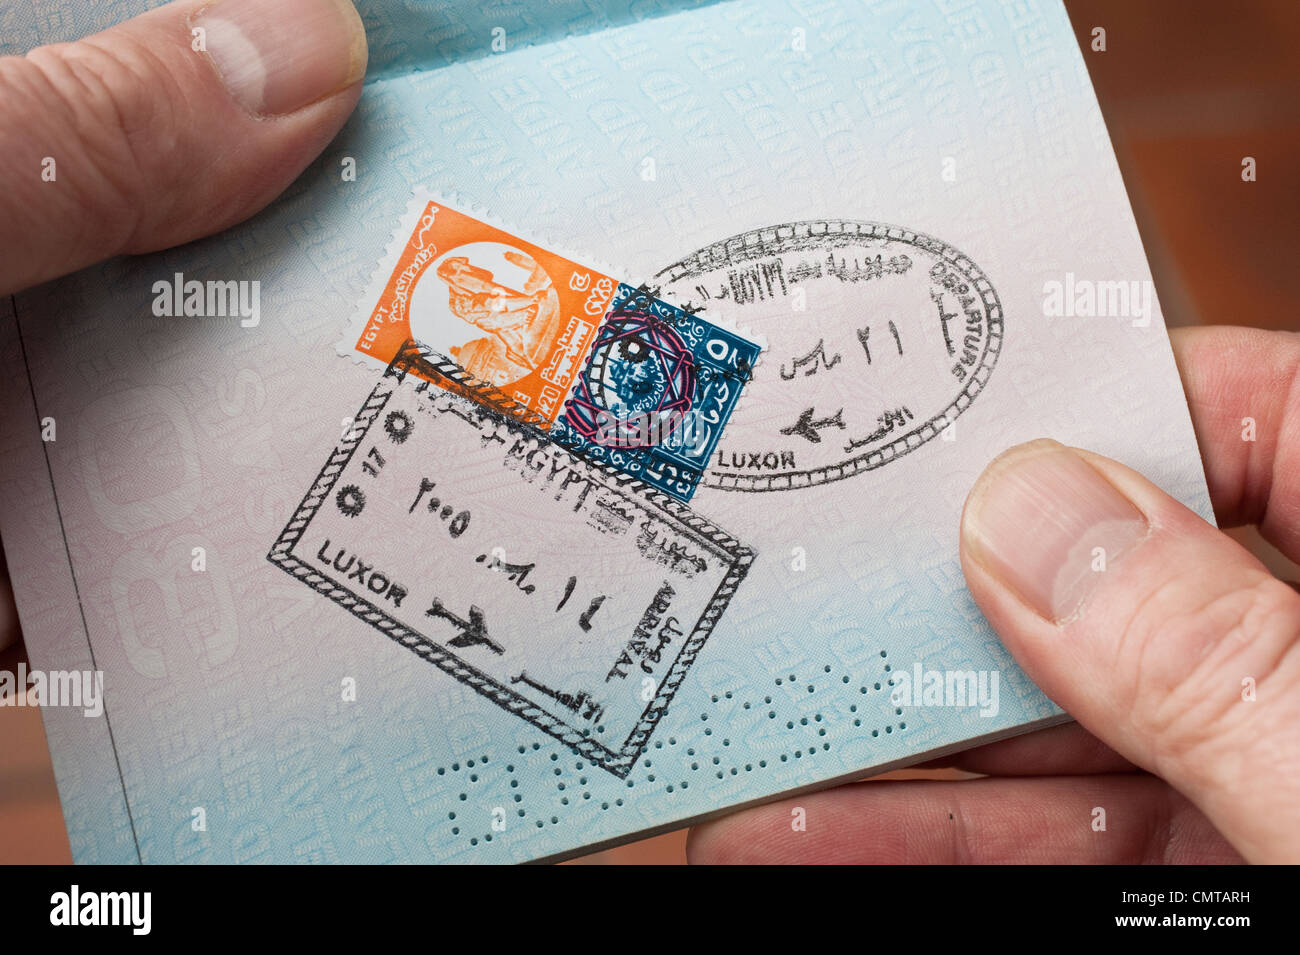 Entry and exit visa stamps for Egypt on a page of a passport - Stock Image